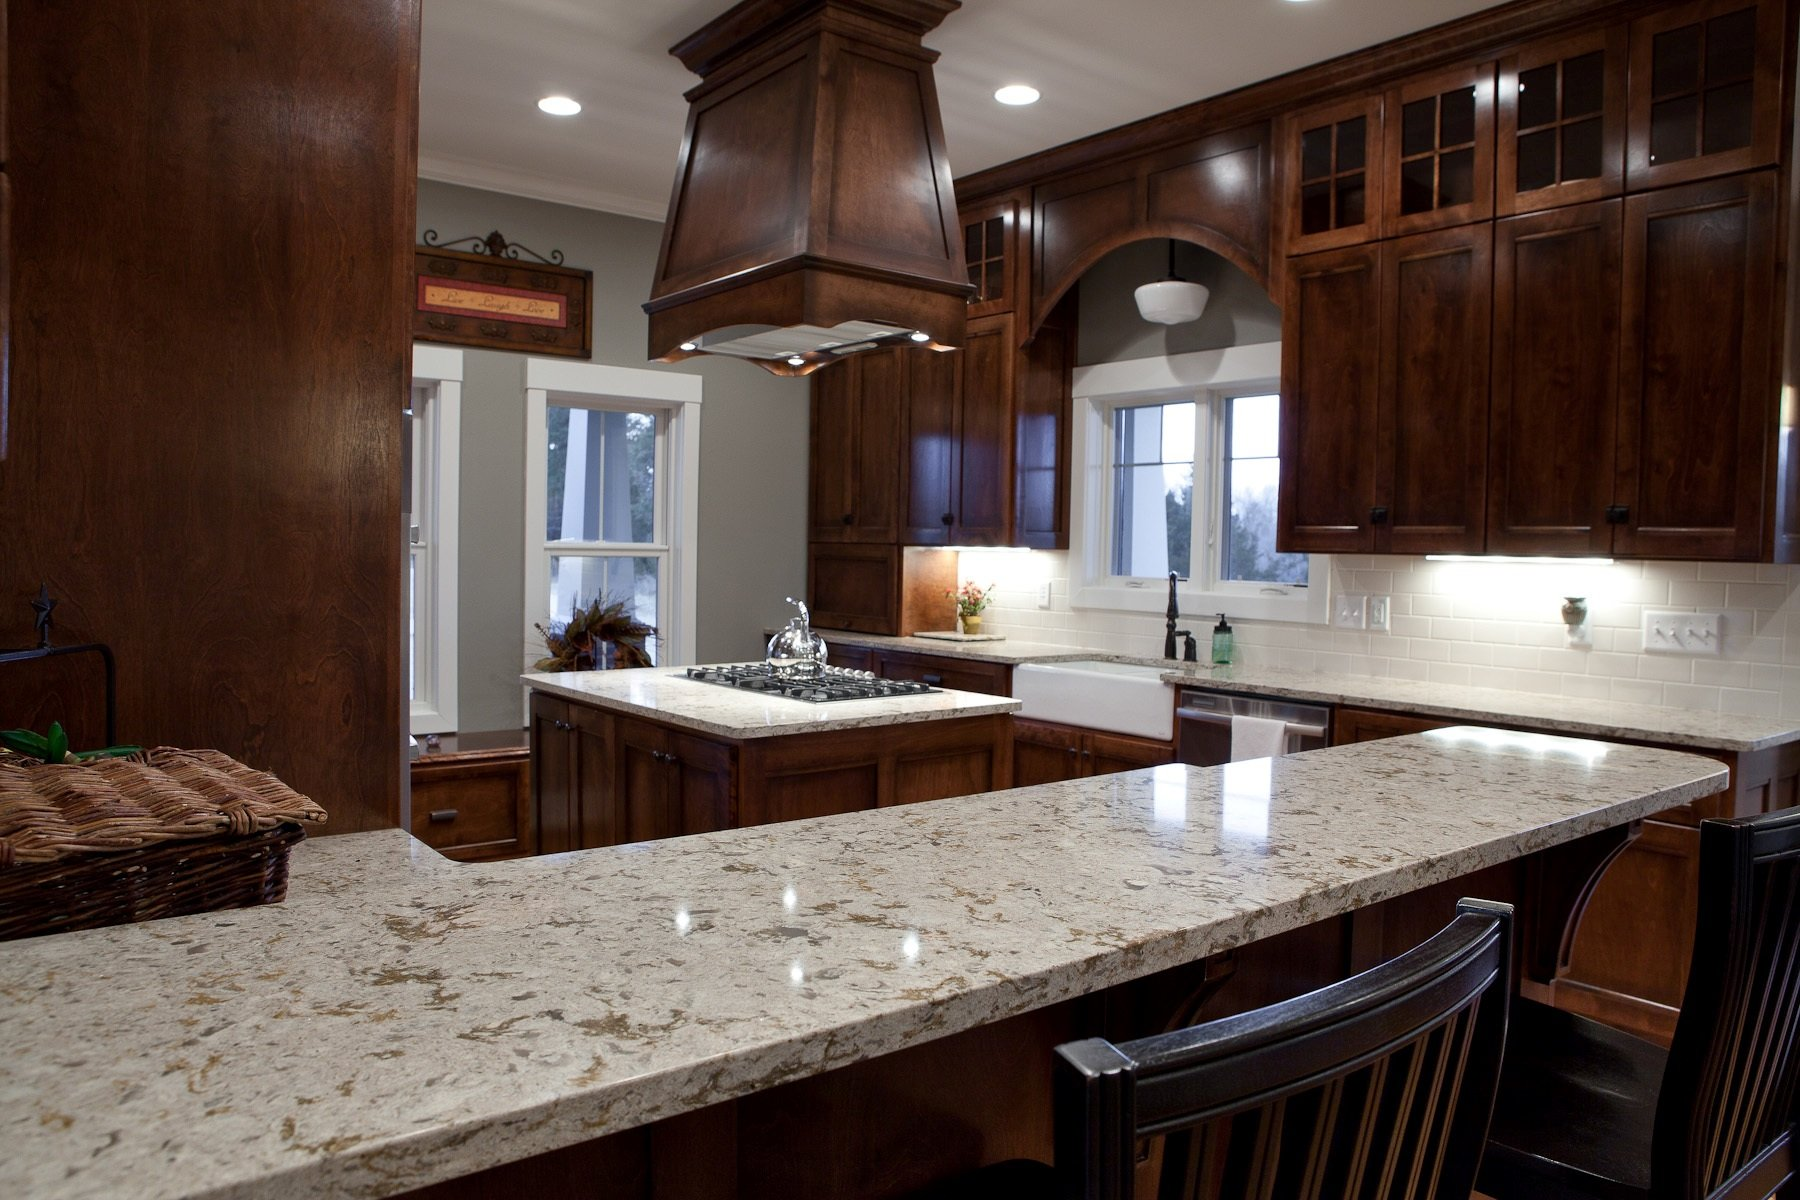 Ordinaire Types Of Kitchen Countertops